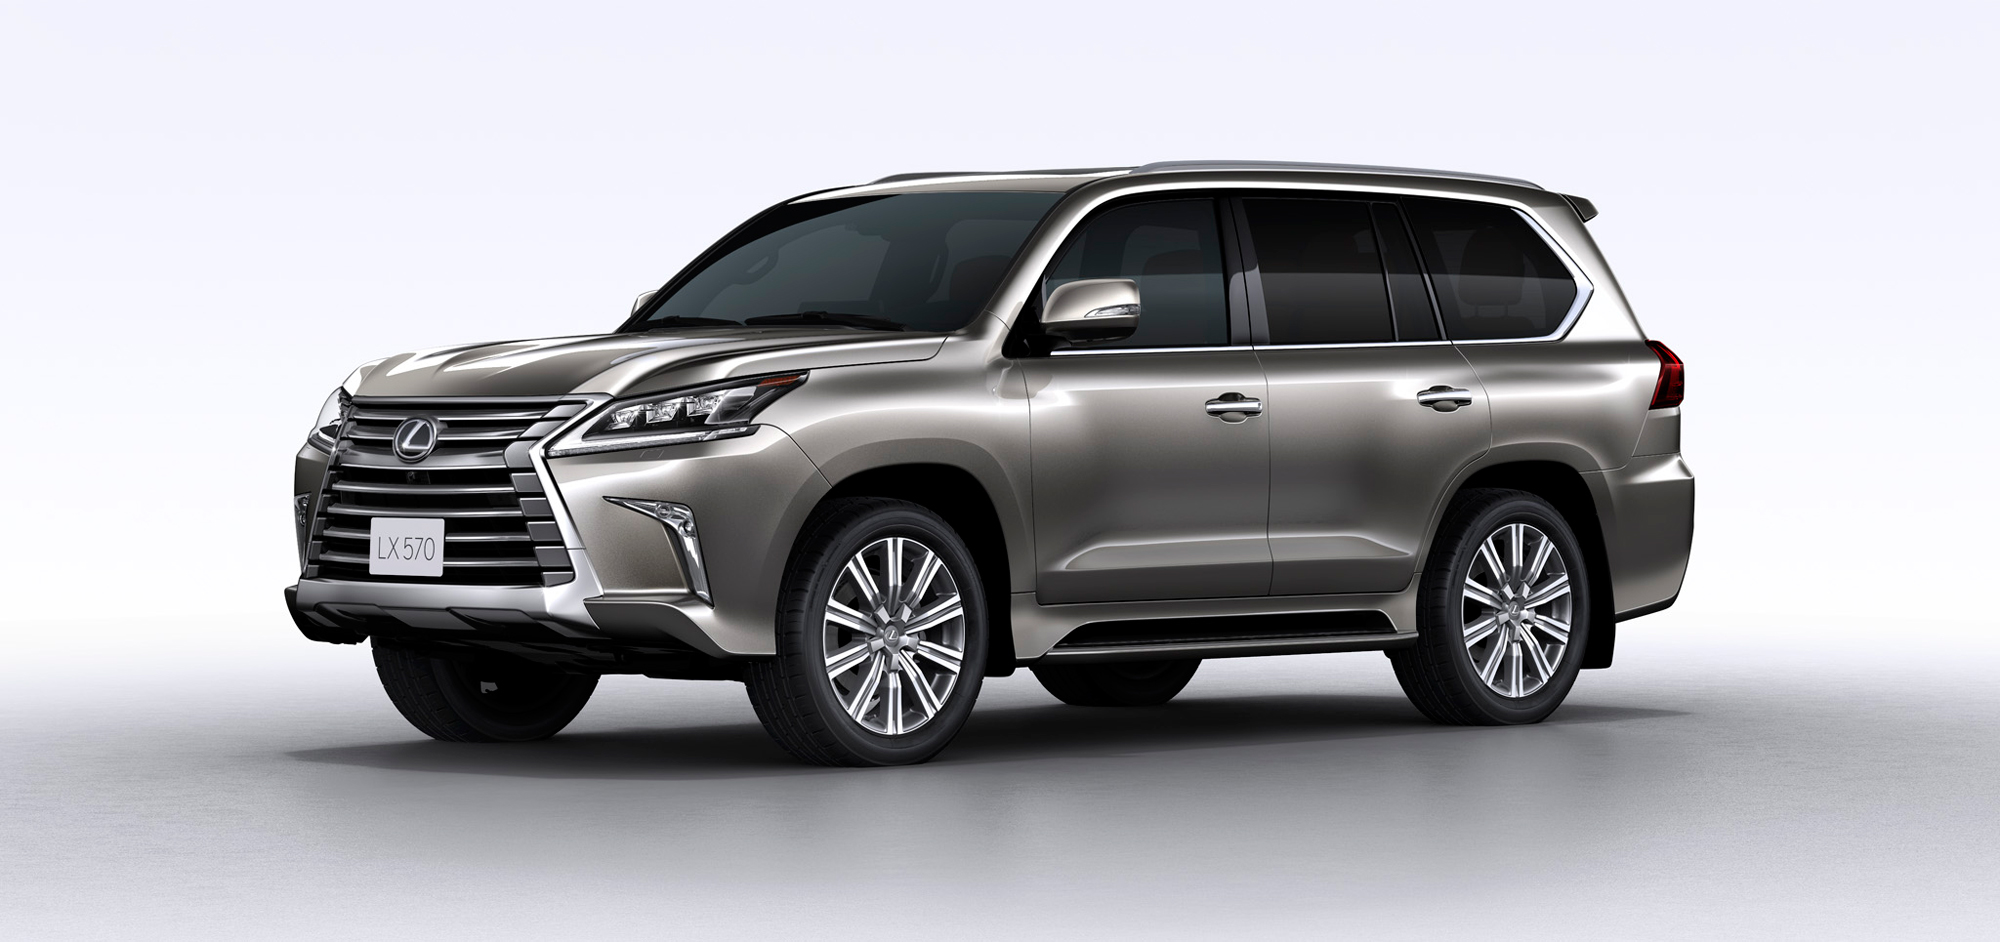 2016 lexus lx570 launchedmotoring middle east car news reviews and buying guides. Black Bedroom Furniture Sets. Home Design Ideas